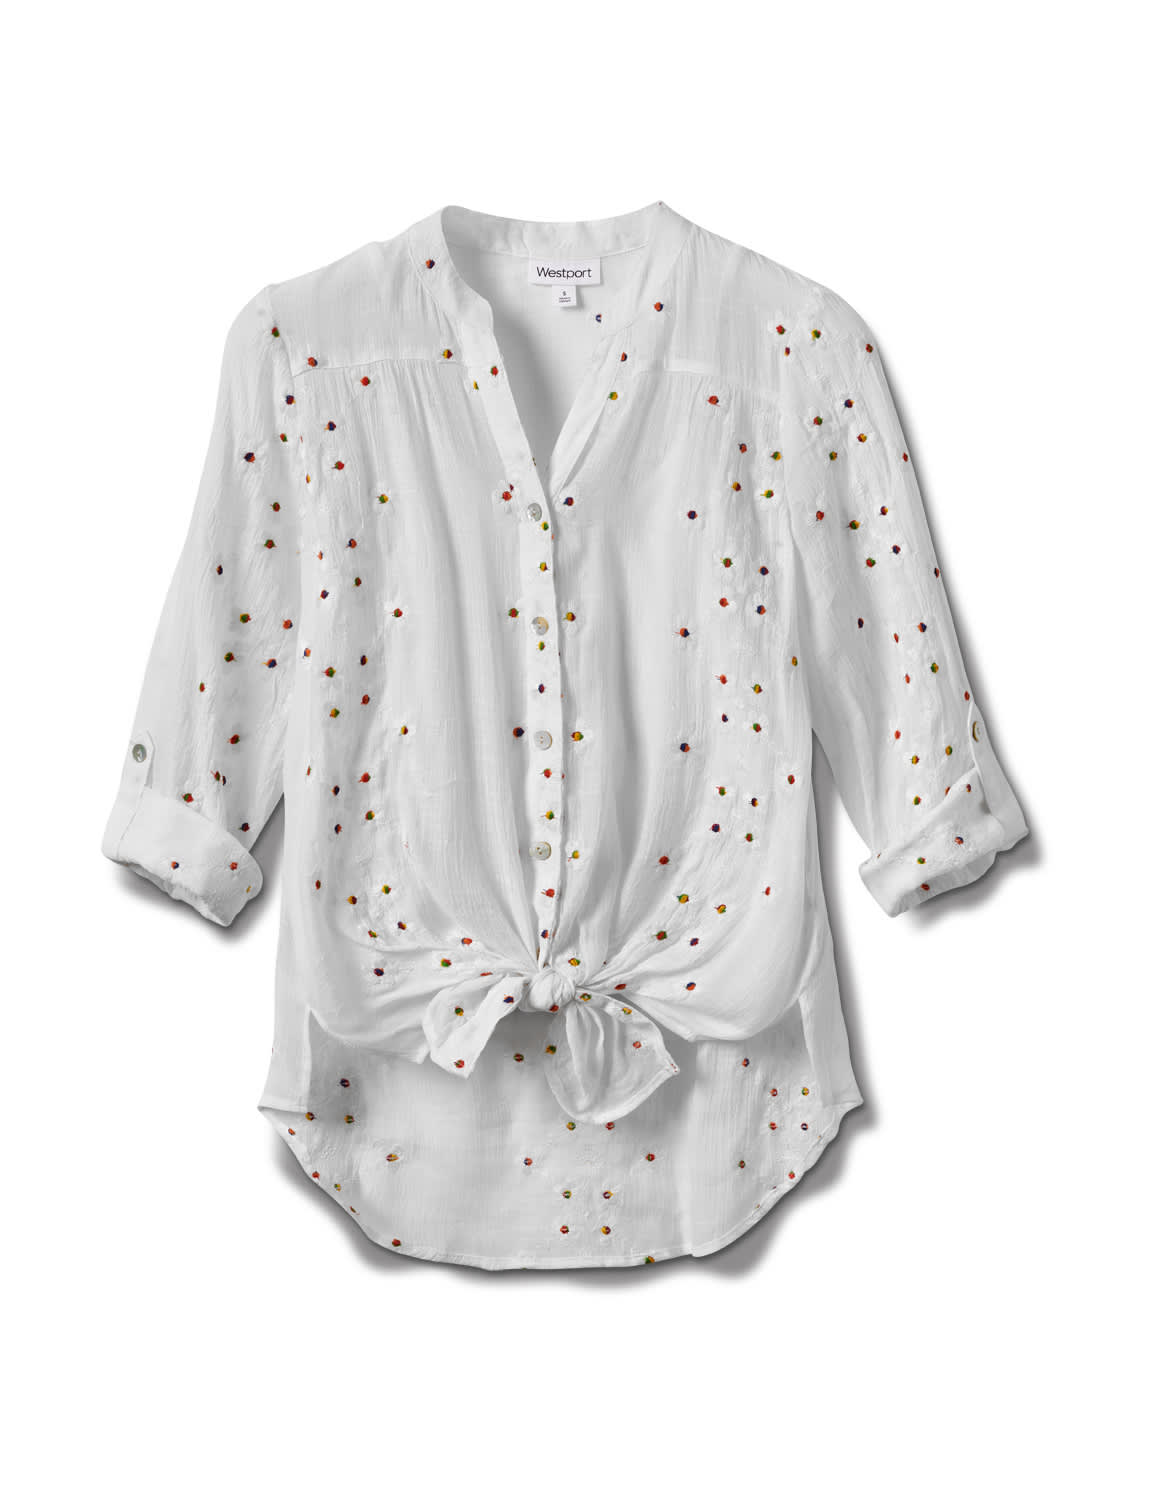 Westport Embroidered Button Front Shirt - Misses - White - Front